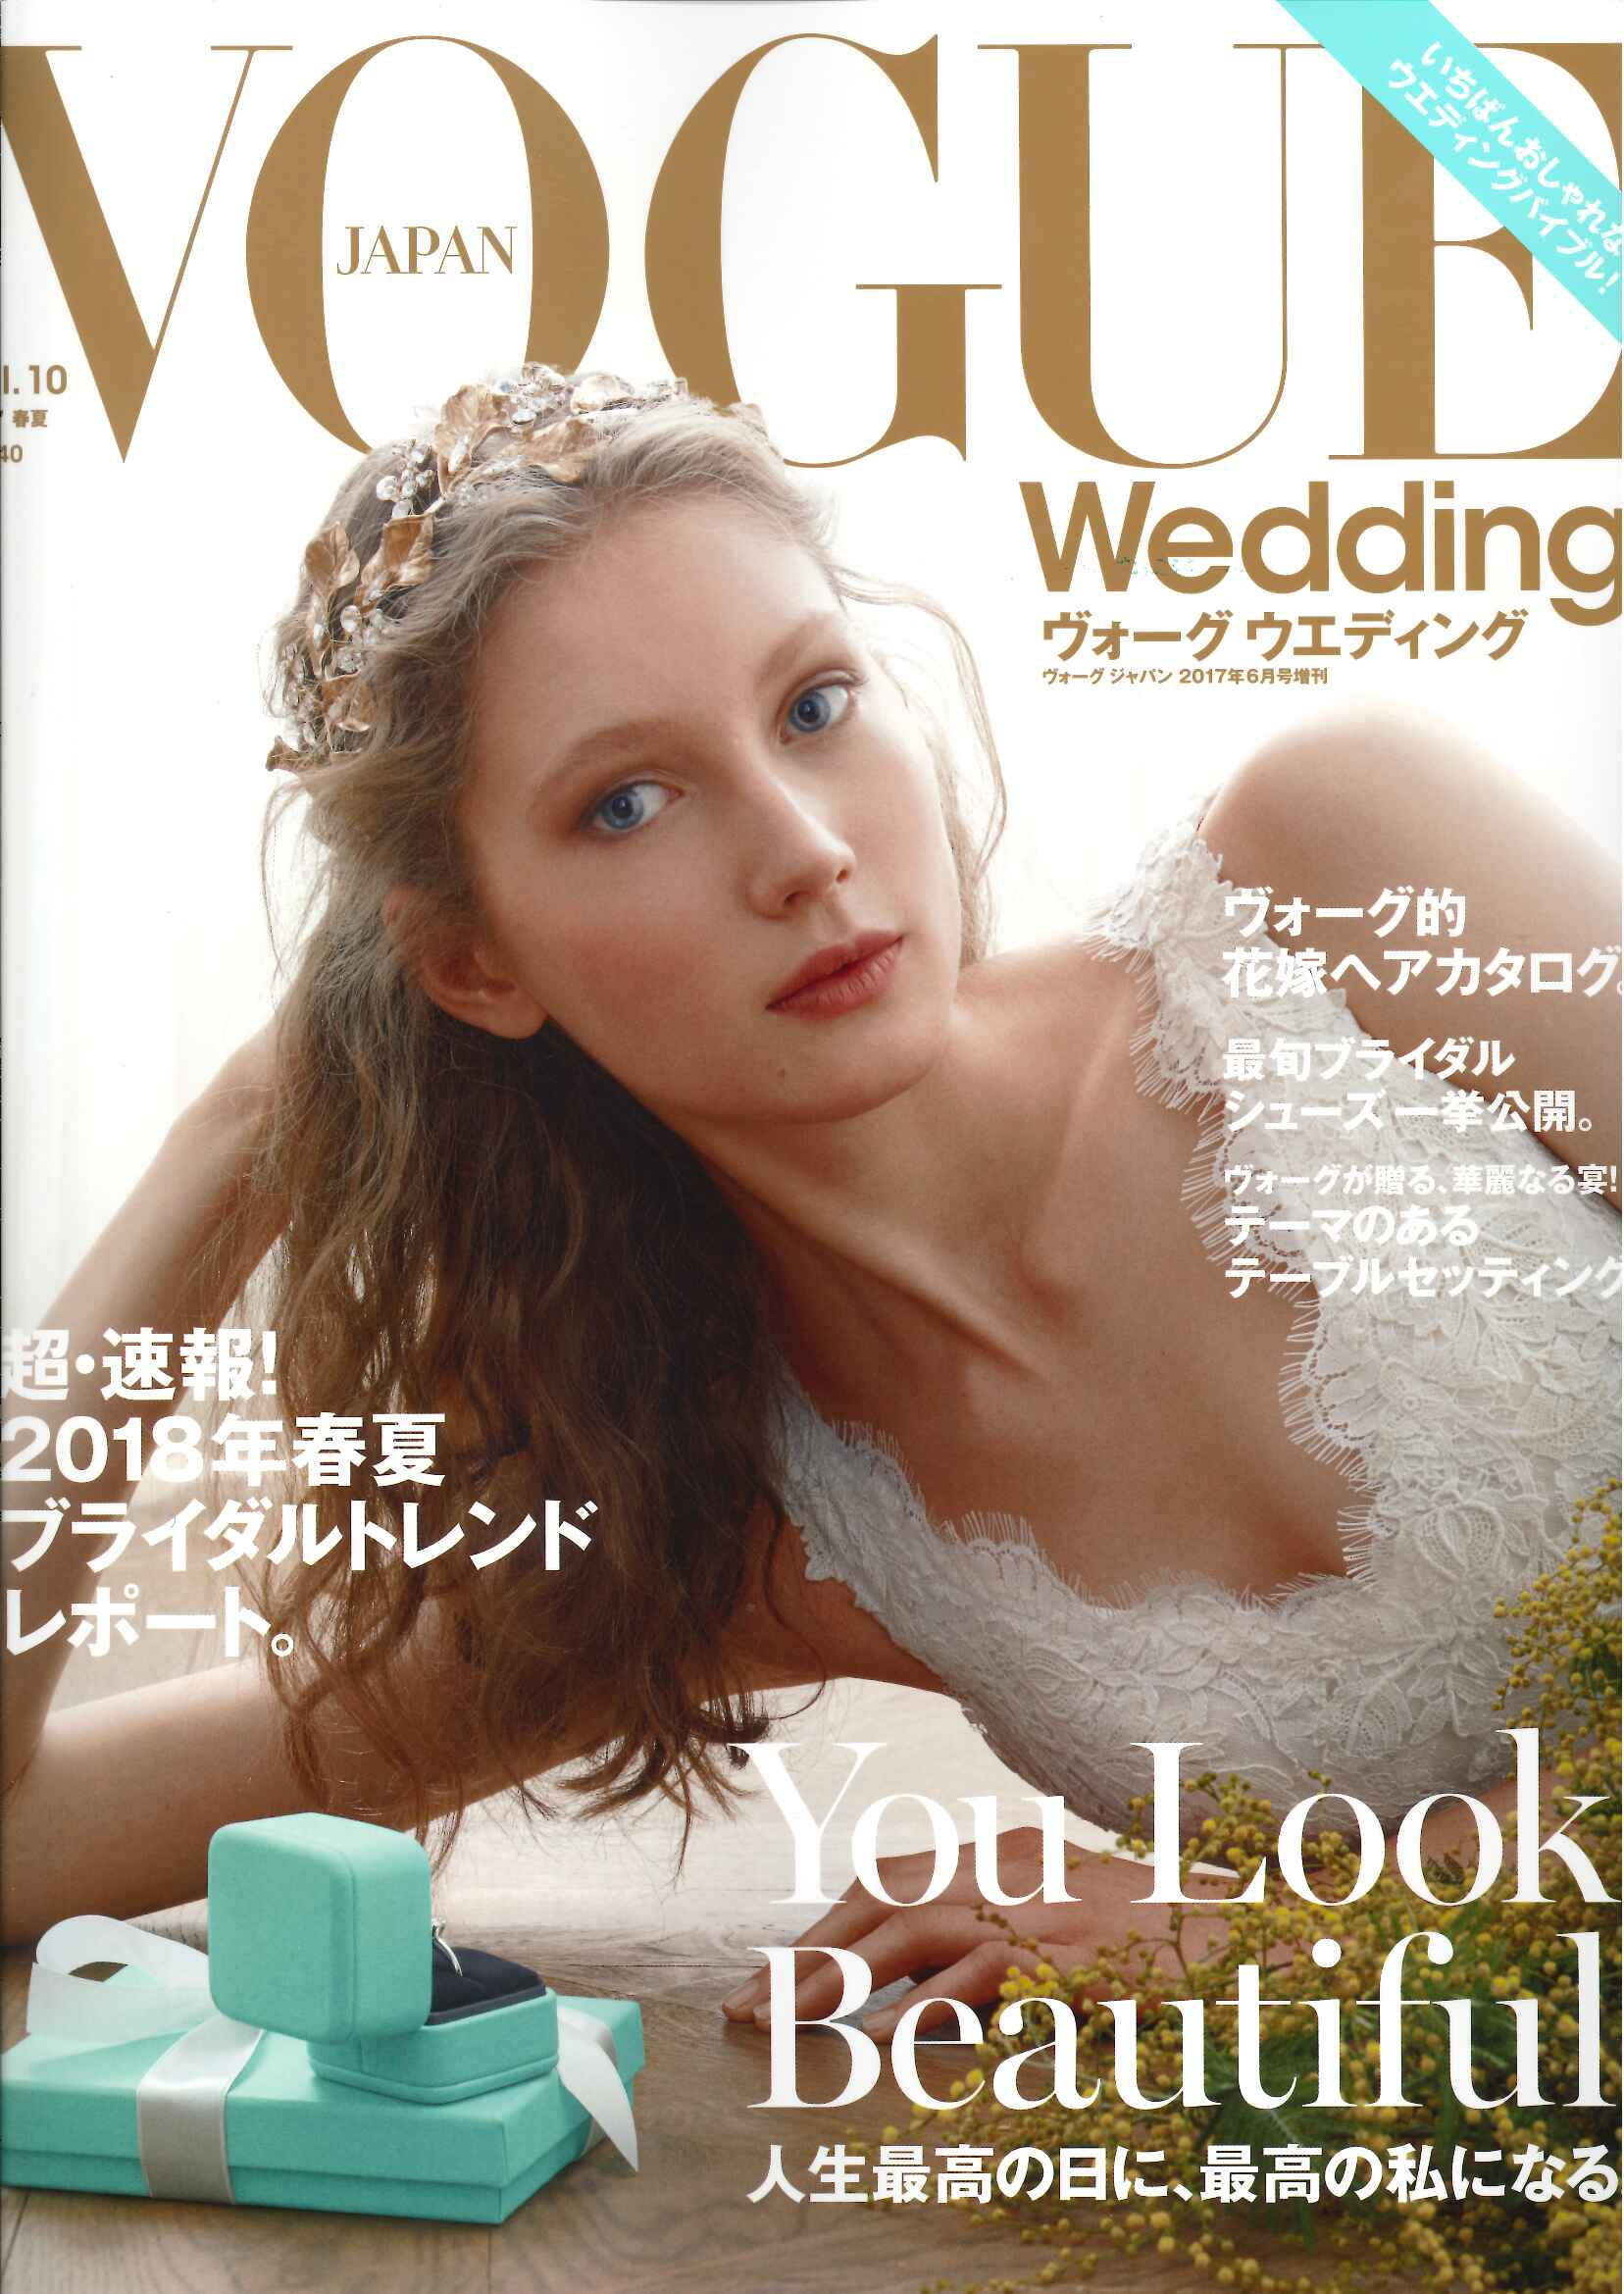 Vogue Wedding Vol.10 表紙